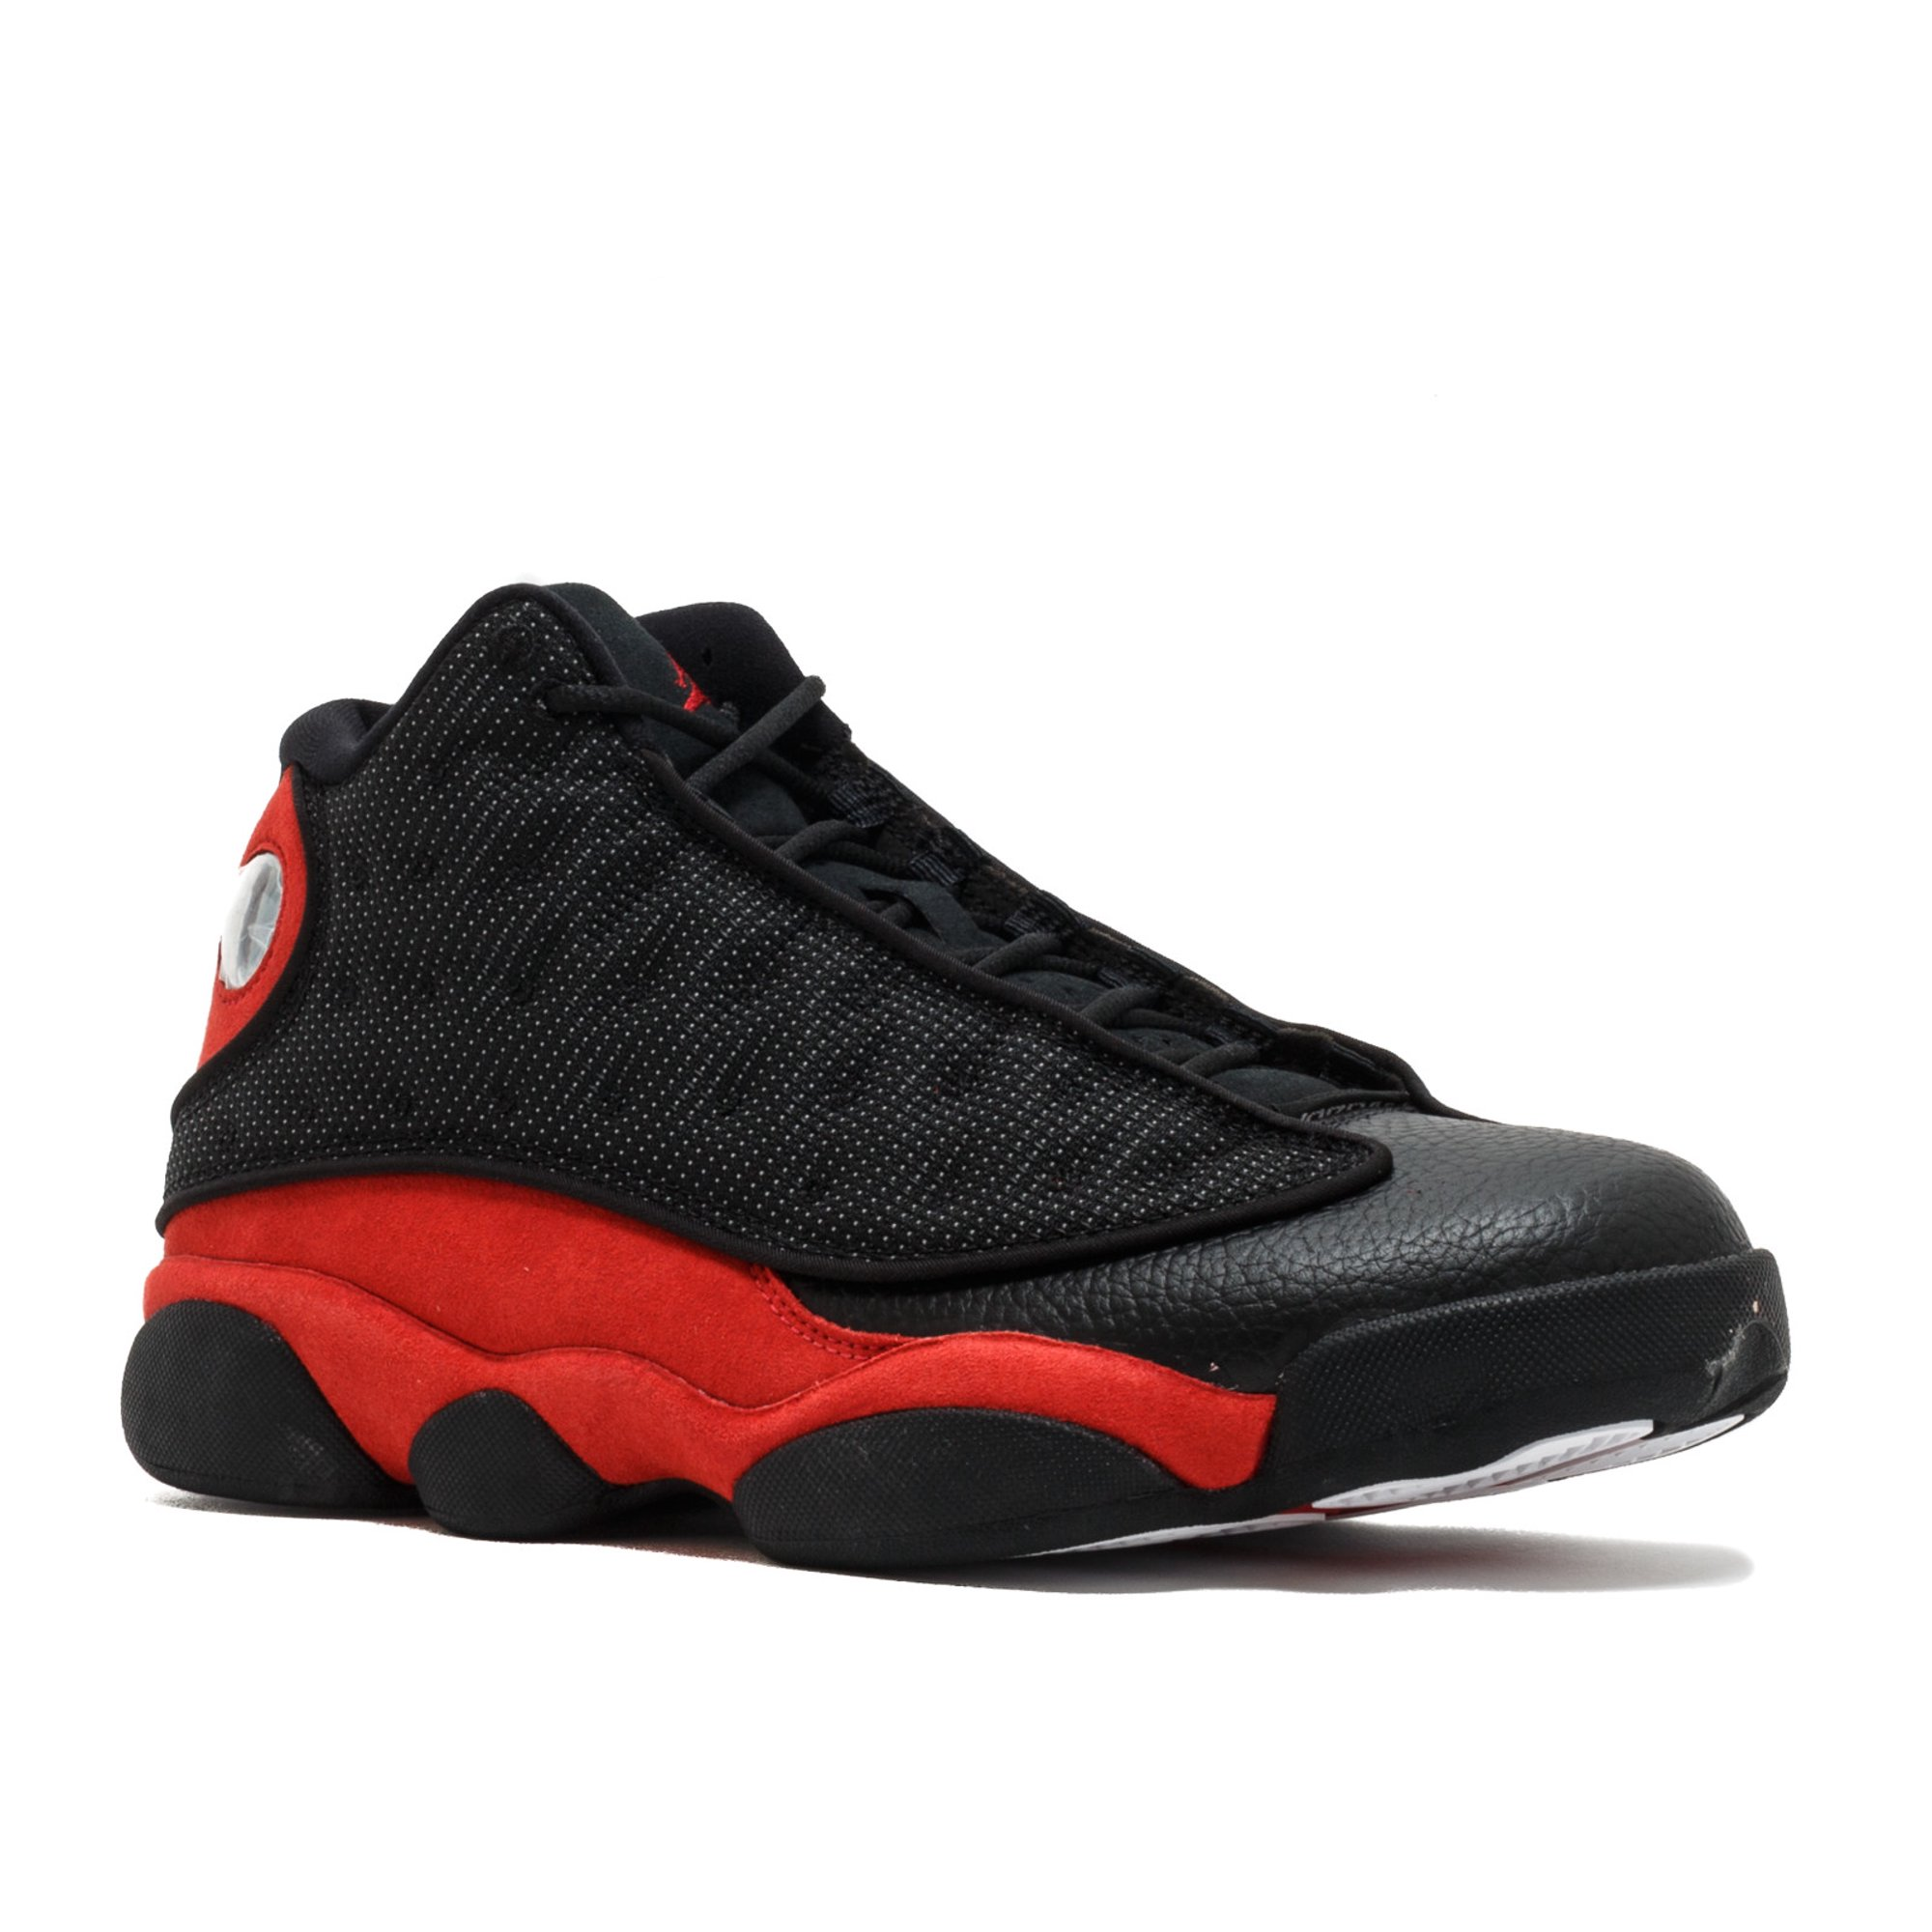 best loved c5ebc 21153 Air Jordan - Men - Air Jordan 13 Retro 'Bred' - 414571-004 - Size 8.5